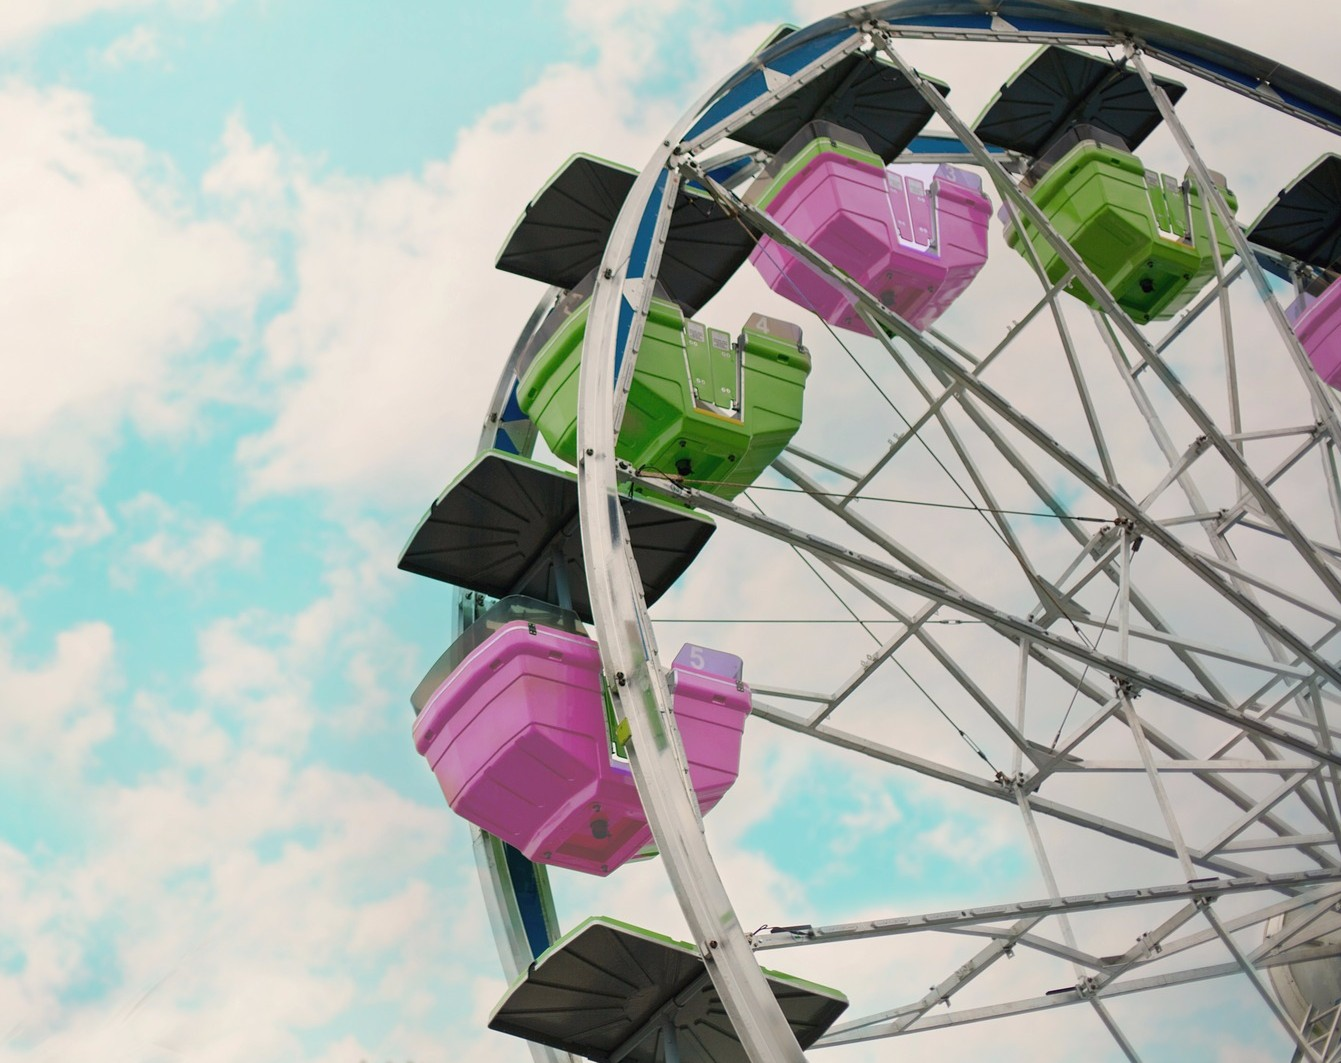 Entertainment, rides, food and more in Rockaway this weekend!